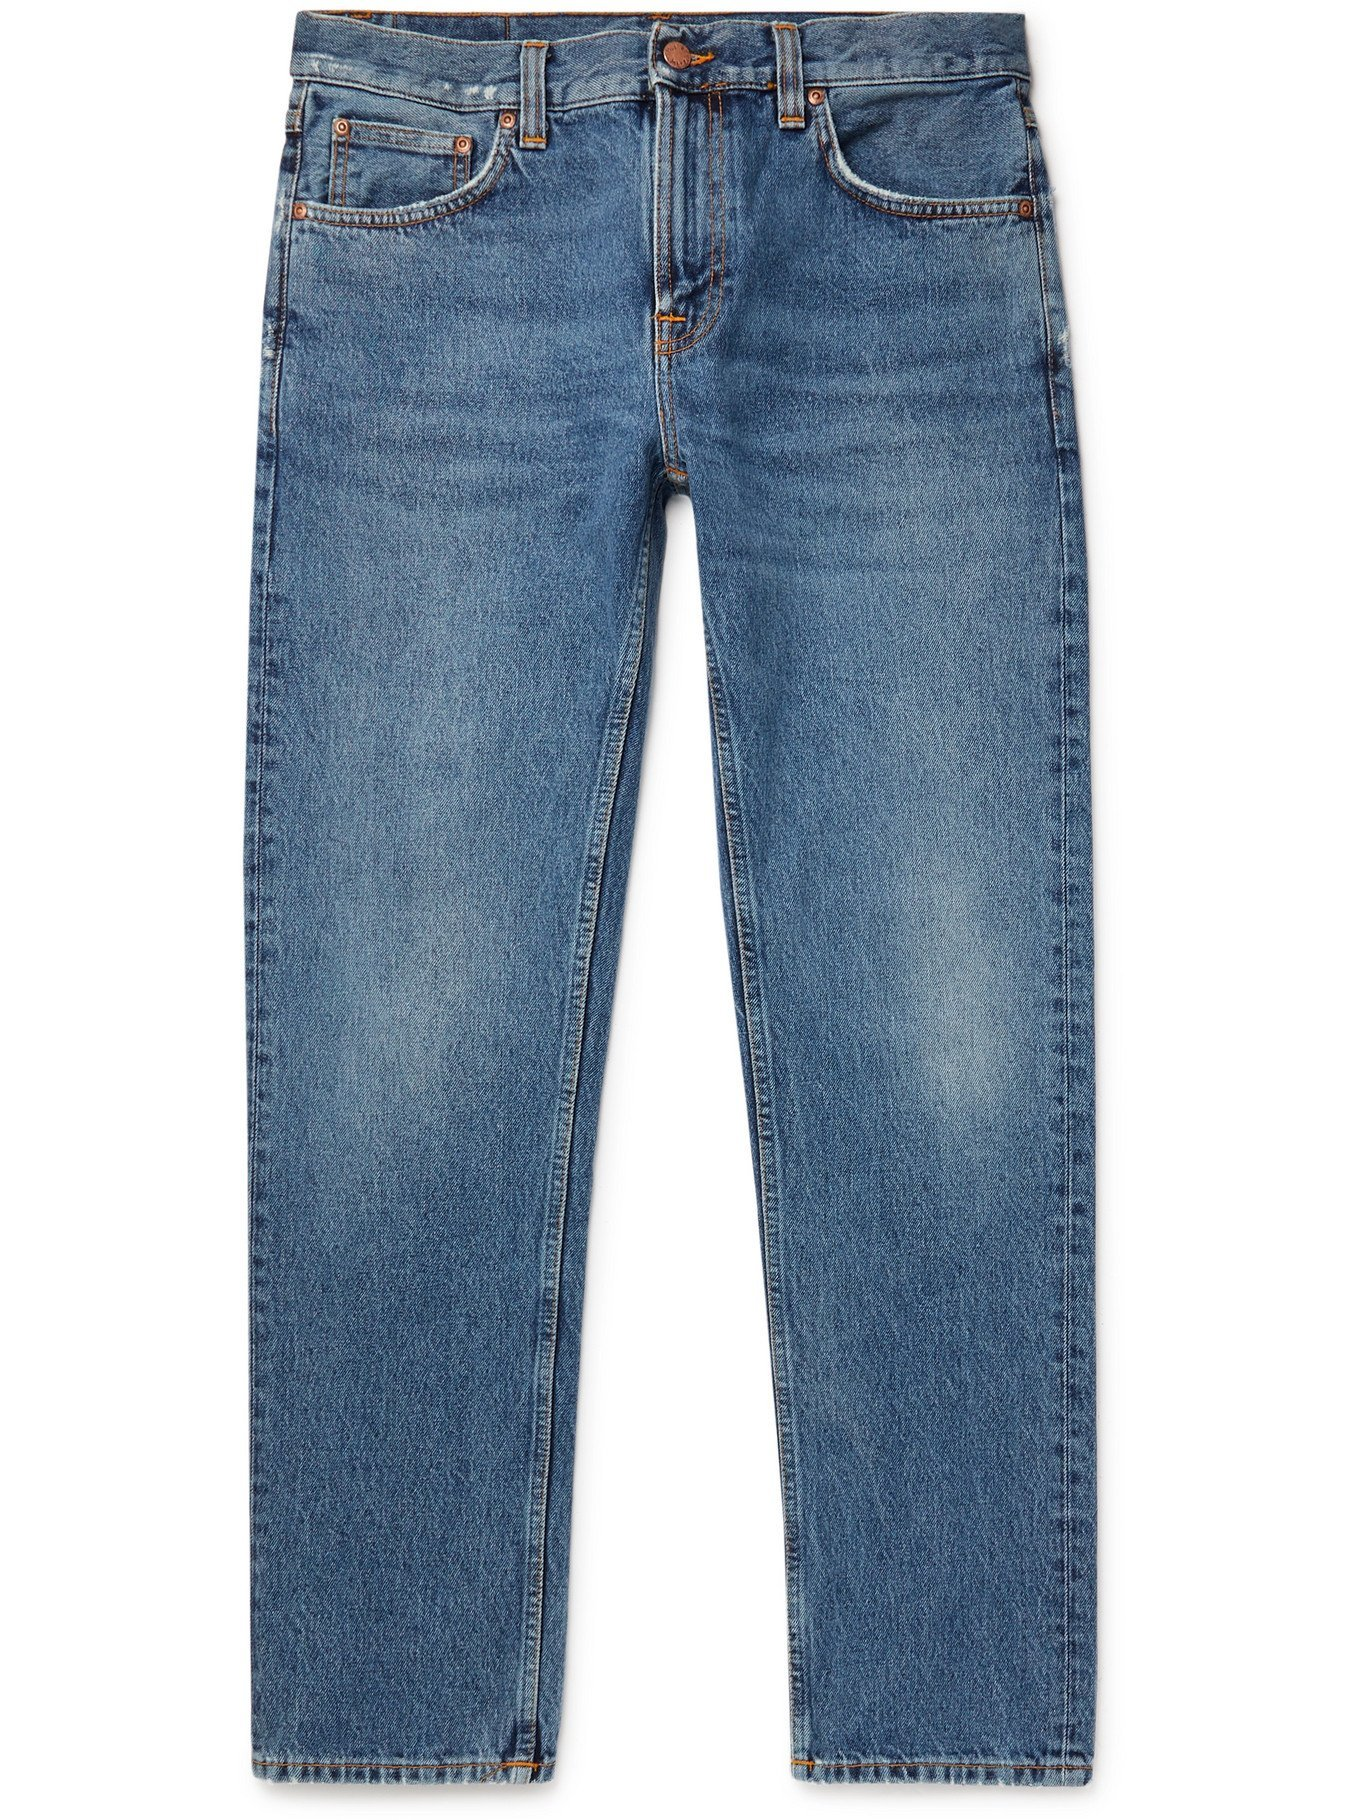 Photo: NUDIE JEANS - Gritty Jackson Slim-Fit Denim Jeans - Blue - 30W 32L